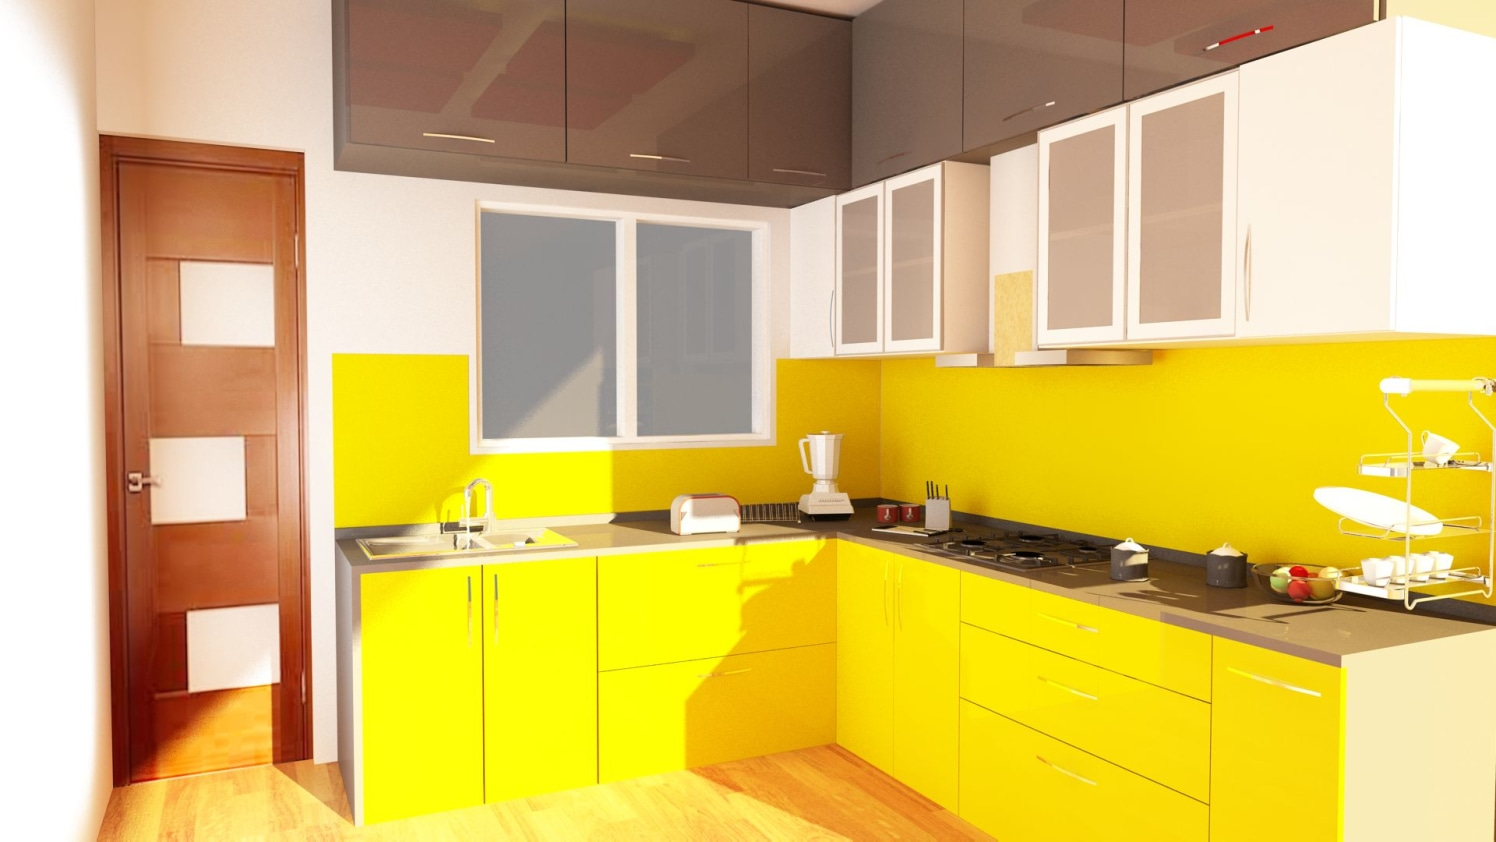 Kitchen with yellow laminates by Talha Naim Momin Modern | Interior Design Photos & Ideas